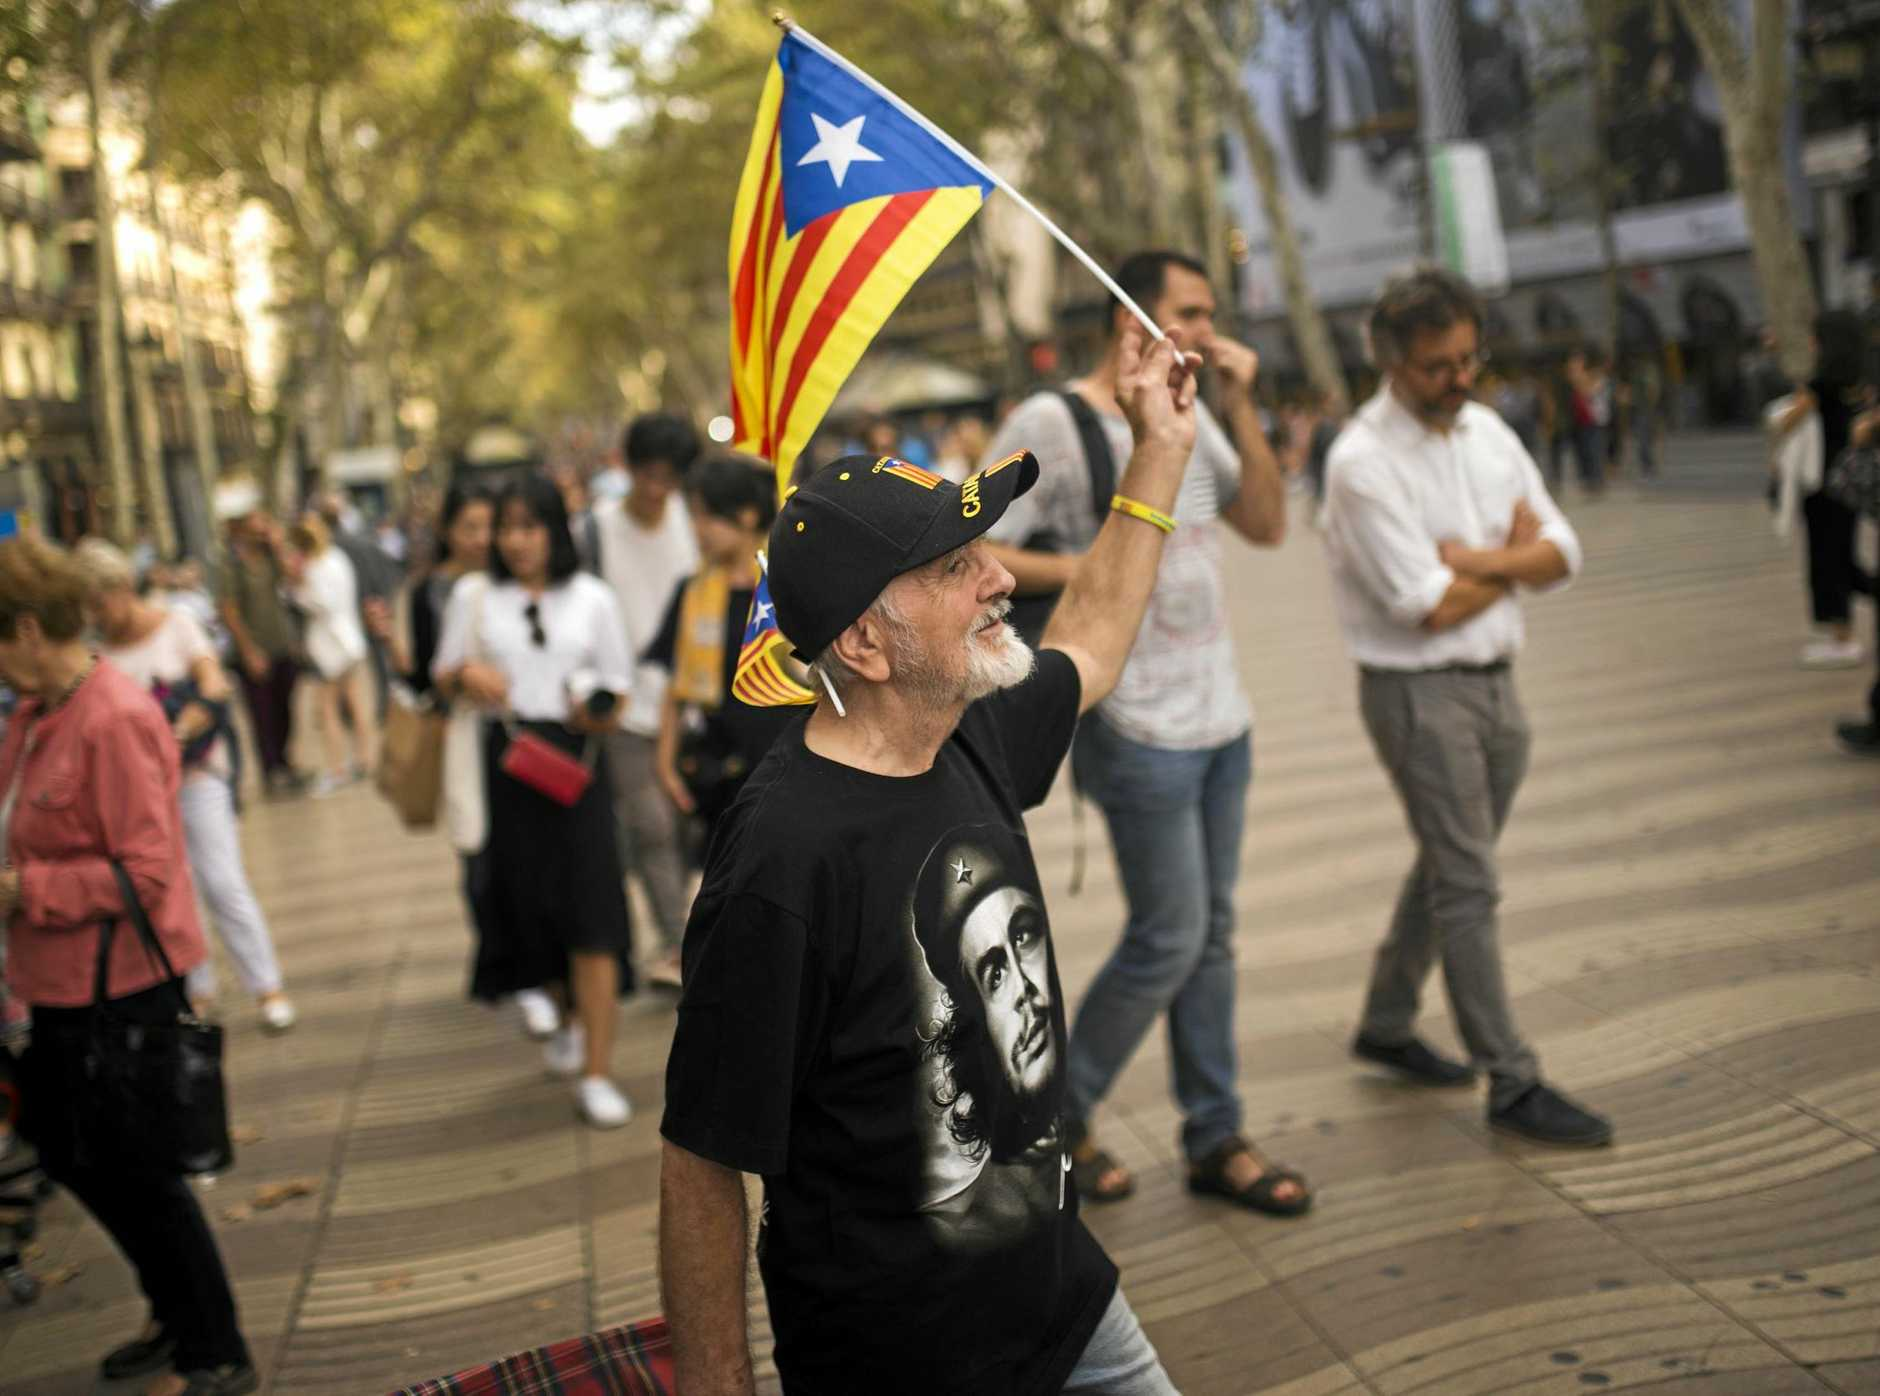 A Barcelona resident waves the Catalonia independence flag as he walks along the Ramblas in Barcelona.